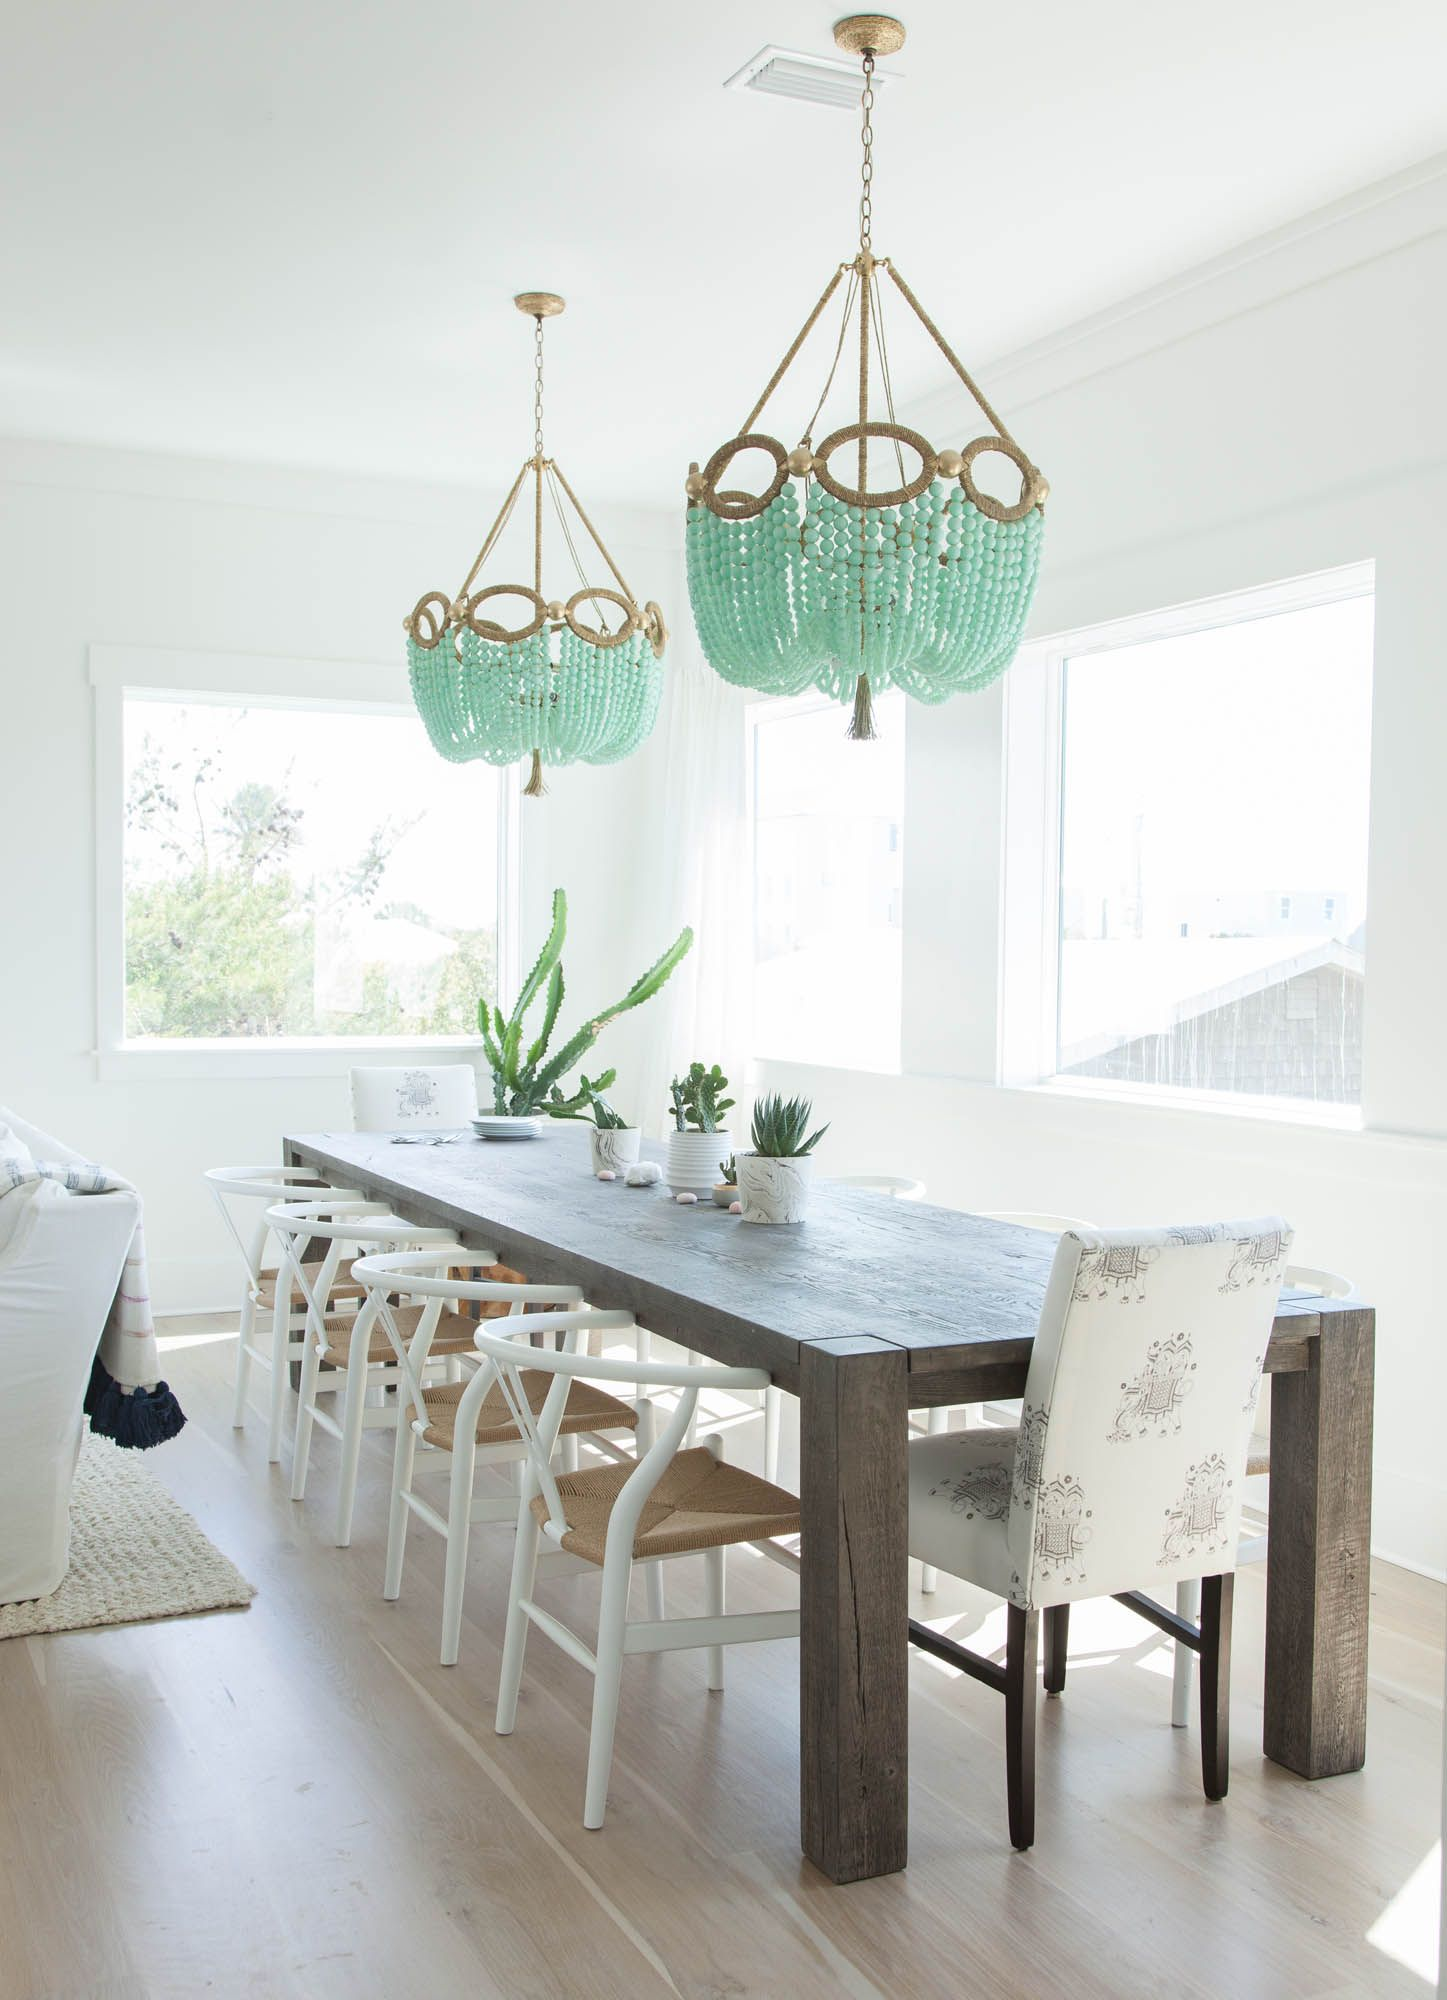 A Florida Vacation Home Inspired by Morocco and India | Rue | Dining ...